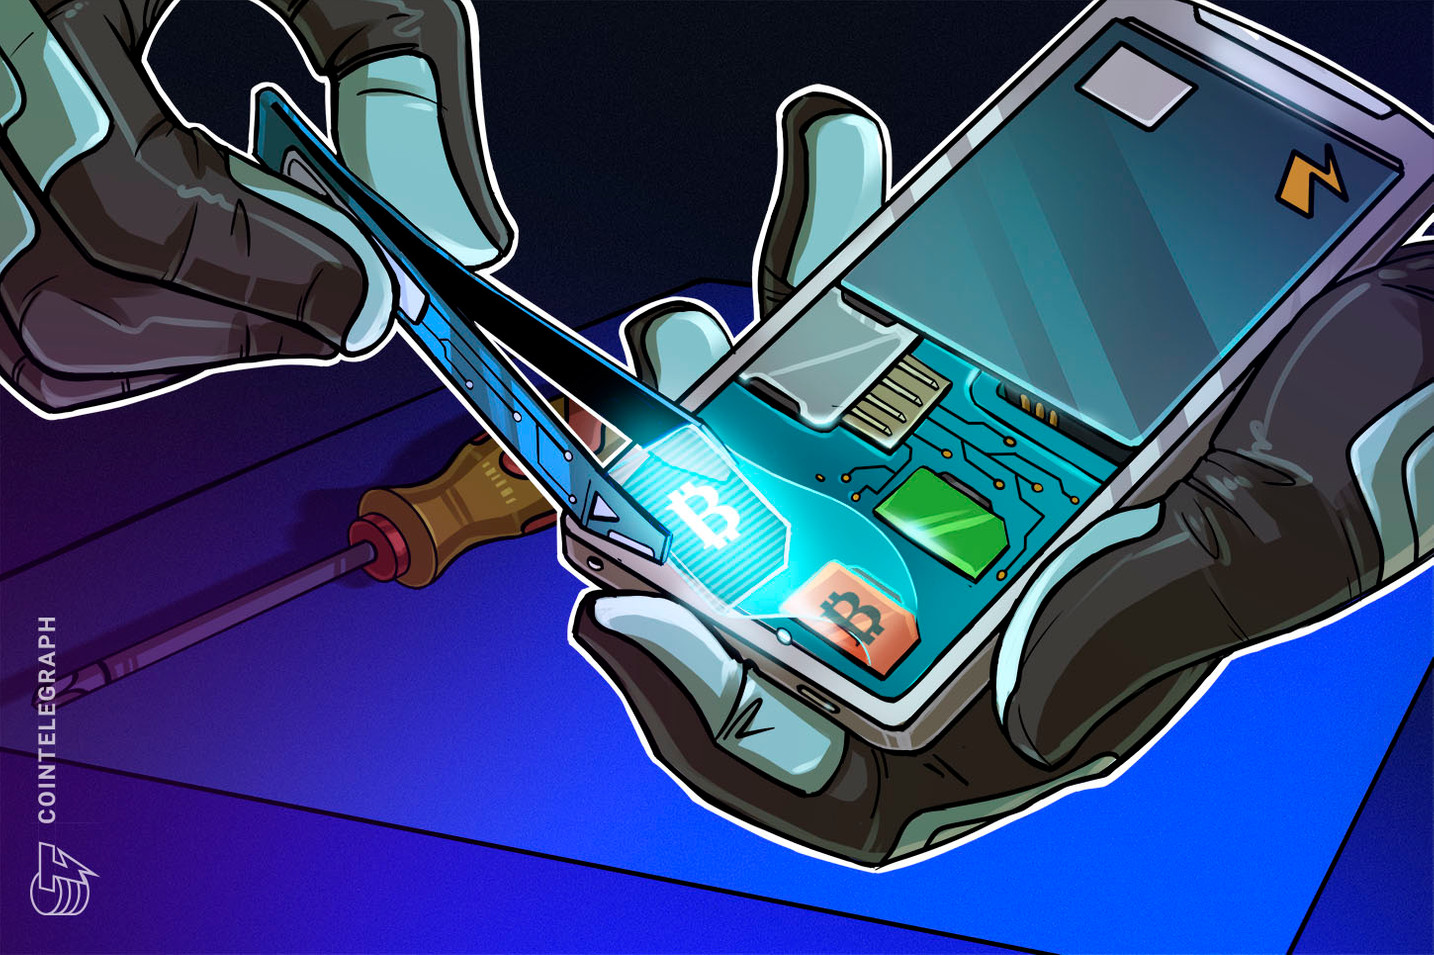 SIM-Swap Victim Sues Crypto Exchange Bittrex for $1M Bitcoin Theft